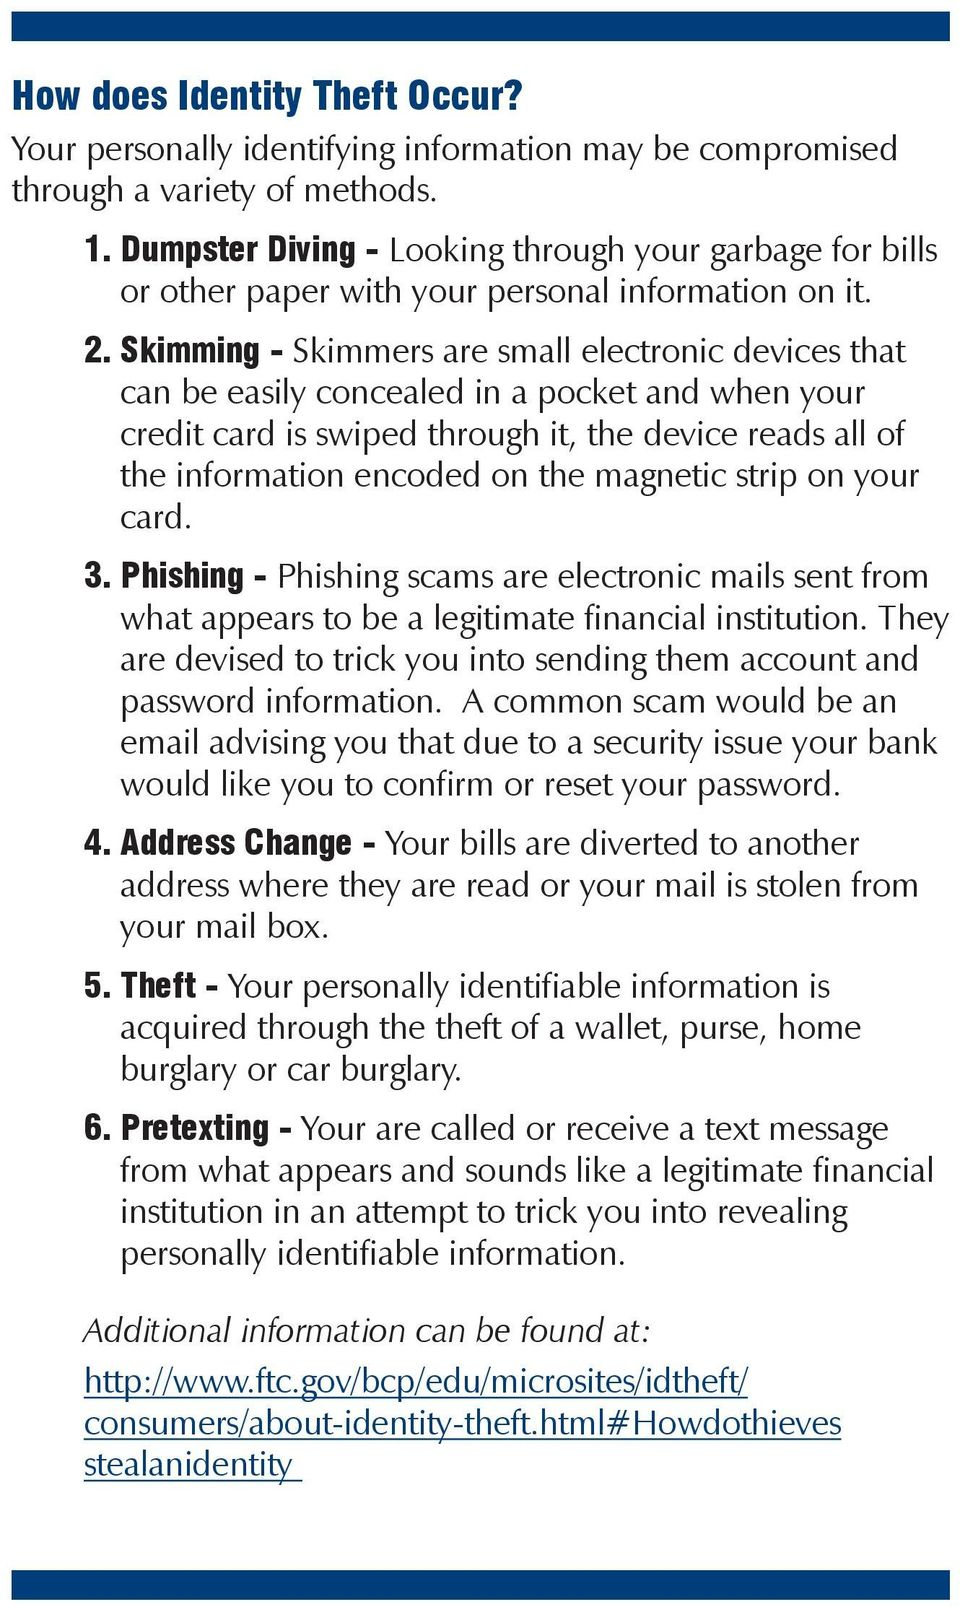 Skimming - Skimmers are small electronic devices that can be easily concealed in a pocket and when your credit card is swiped through it, the device reads all of the information encoded on the